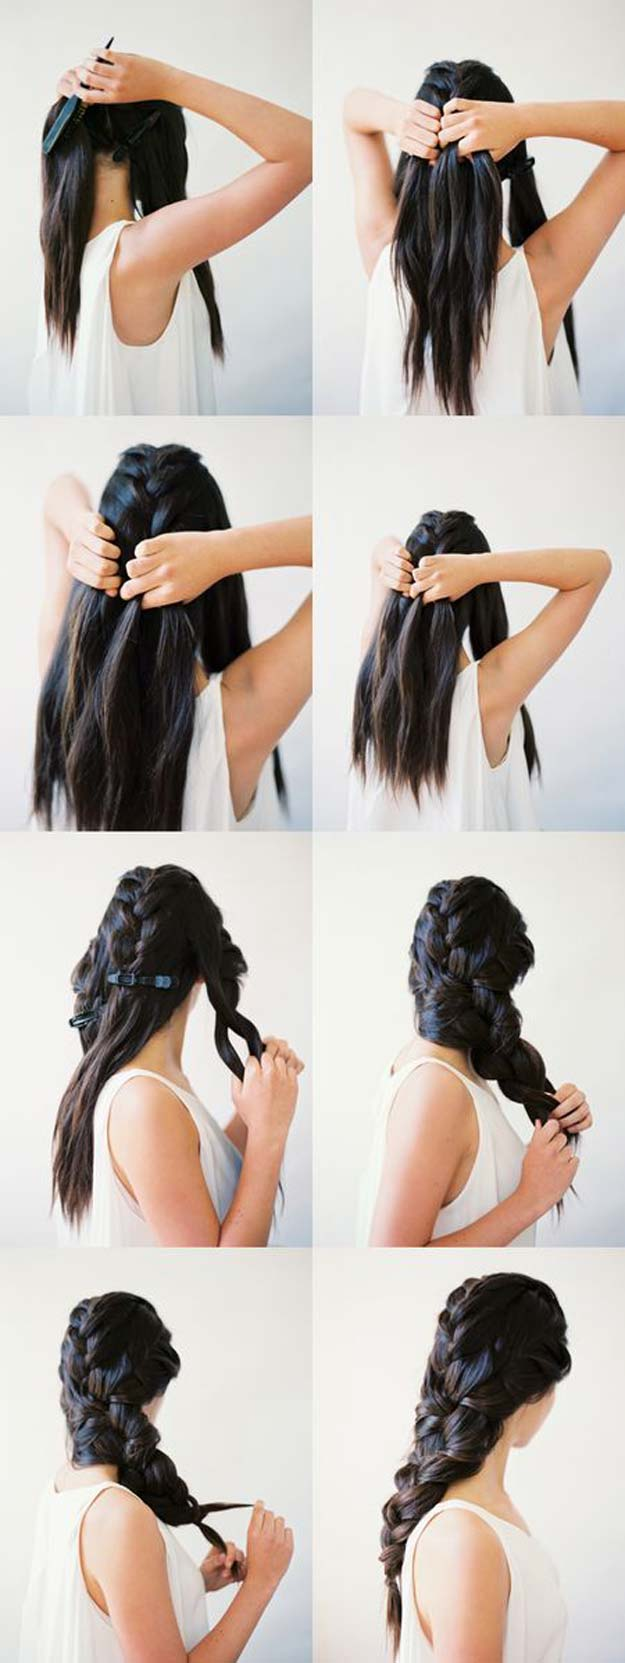 41 diy cool easy hairstyles that real people can actually do at home cool and easy diy hairstyles stylish braids quick and easy ideas for back to solutioingenieria